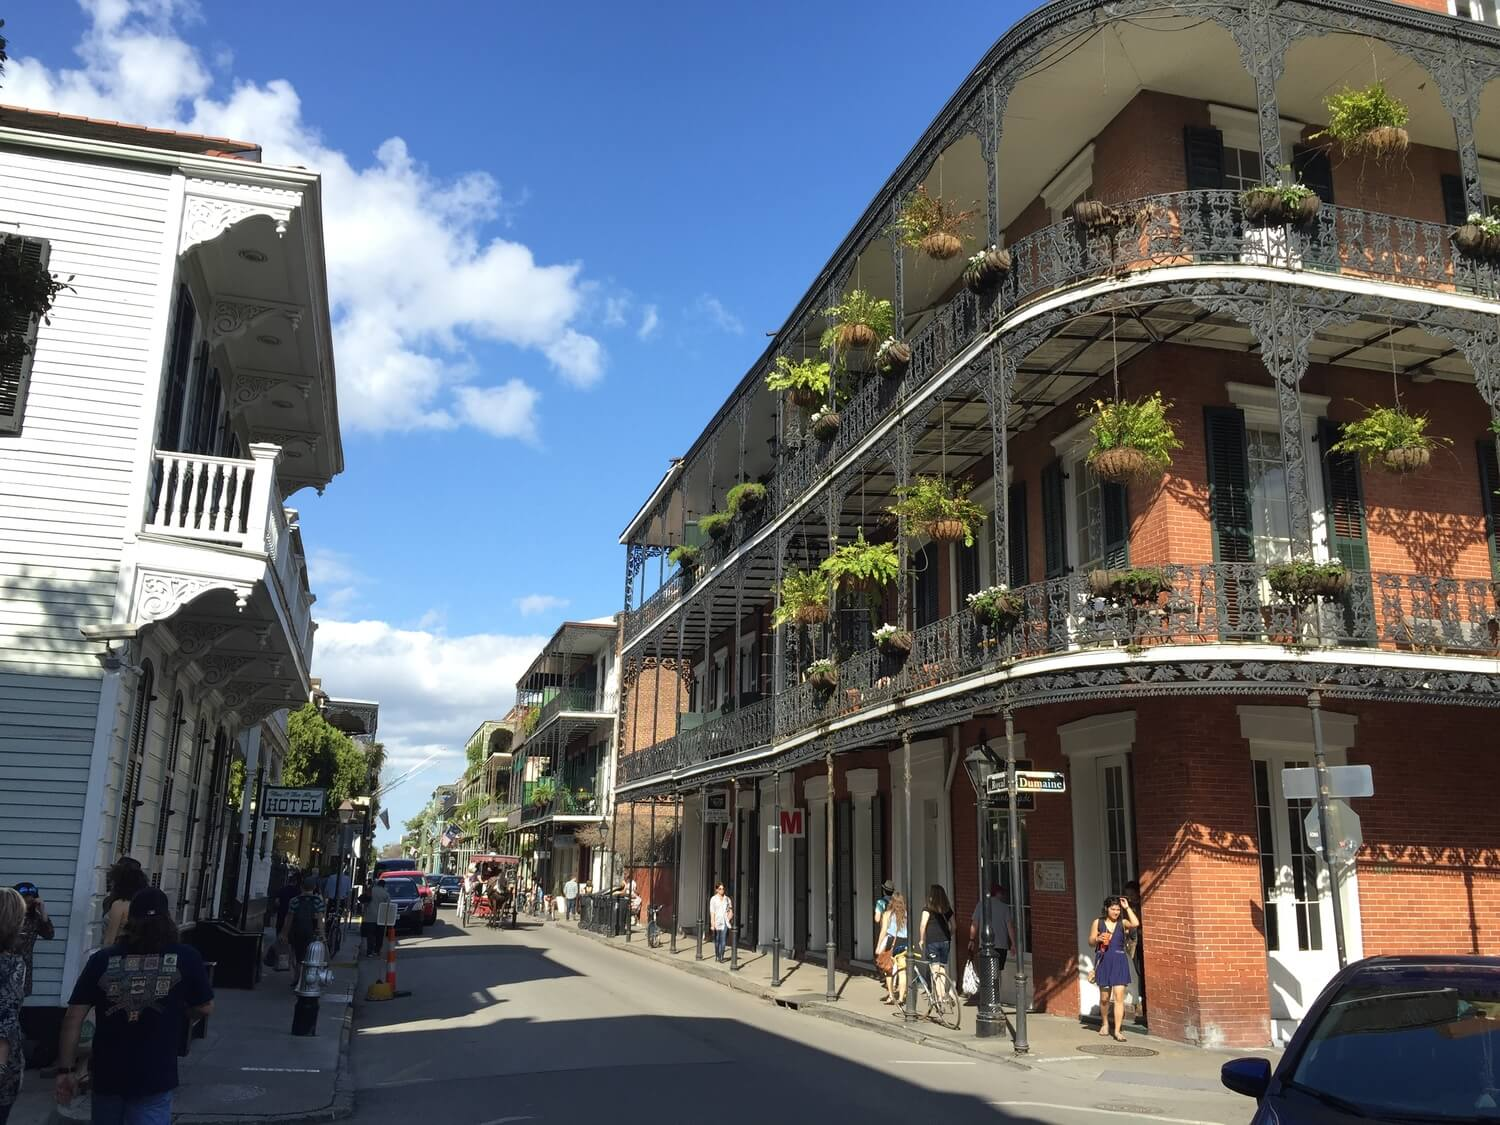 Classic New Orleans balconies and galleries featuring hanging plants. #7 in Best Things to Do in the French Quarter.